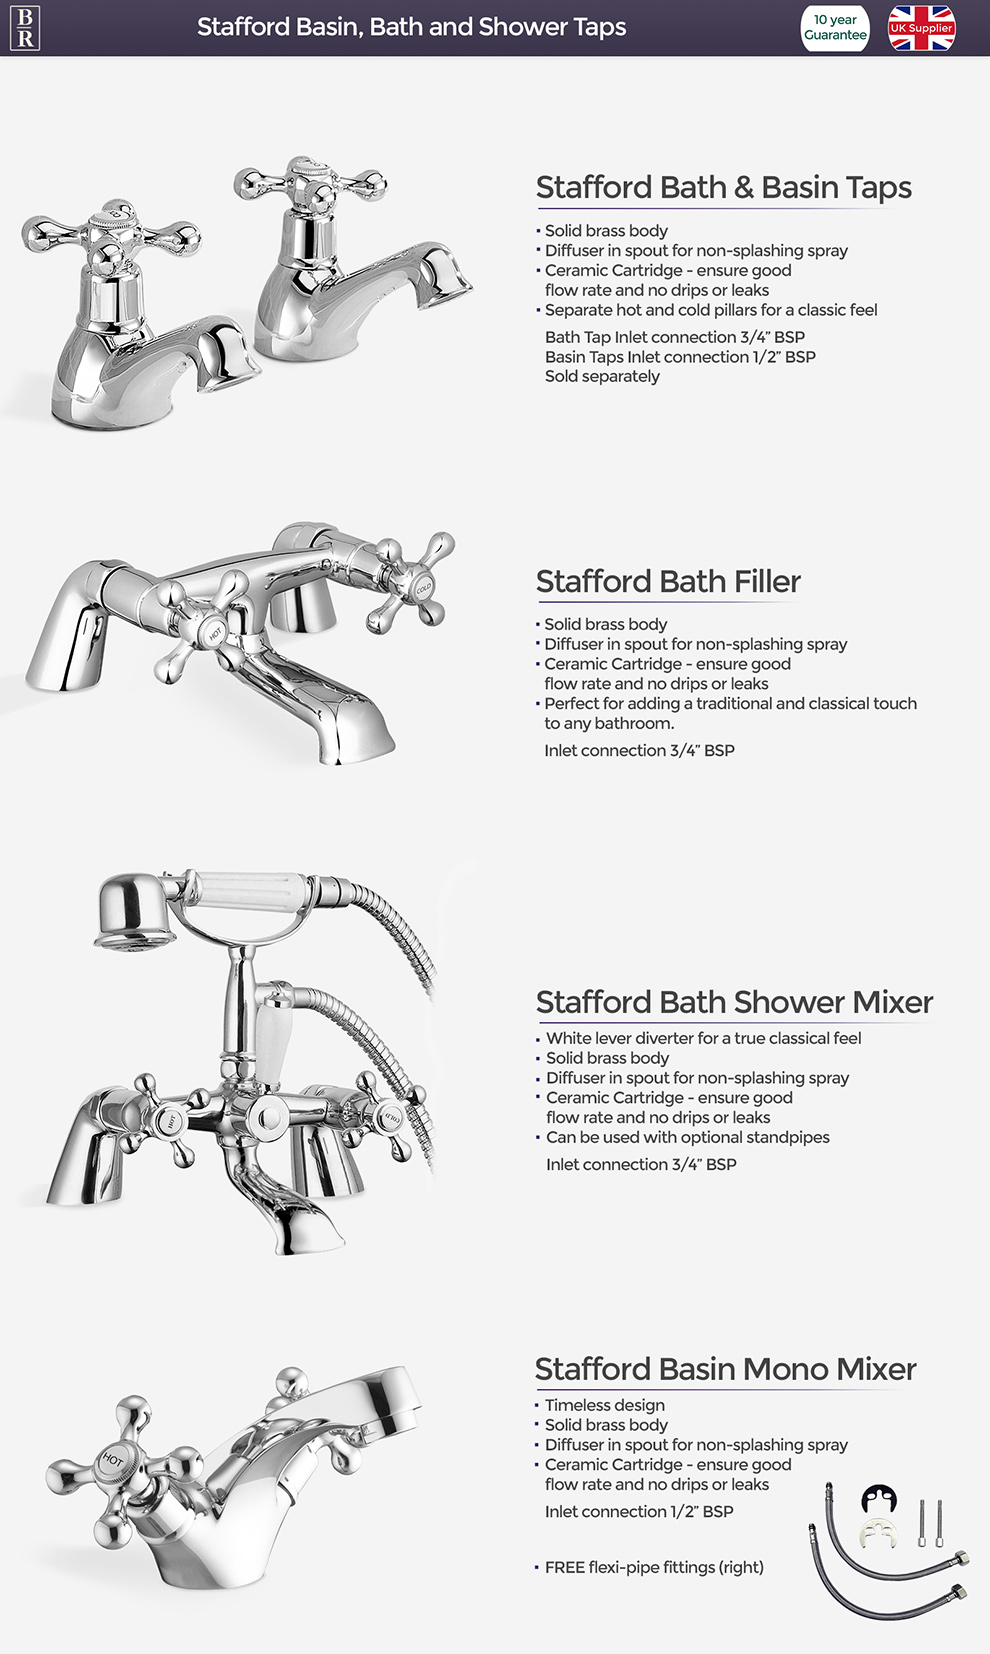 Stafford Classic Bathroom Sink Basin Mono Mixer Bath Filler Shower Automatic Faucet Wiring Diagrams Suitable Water Systems